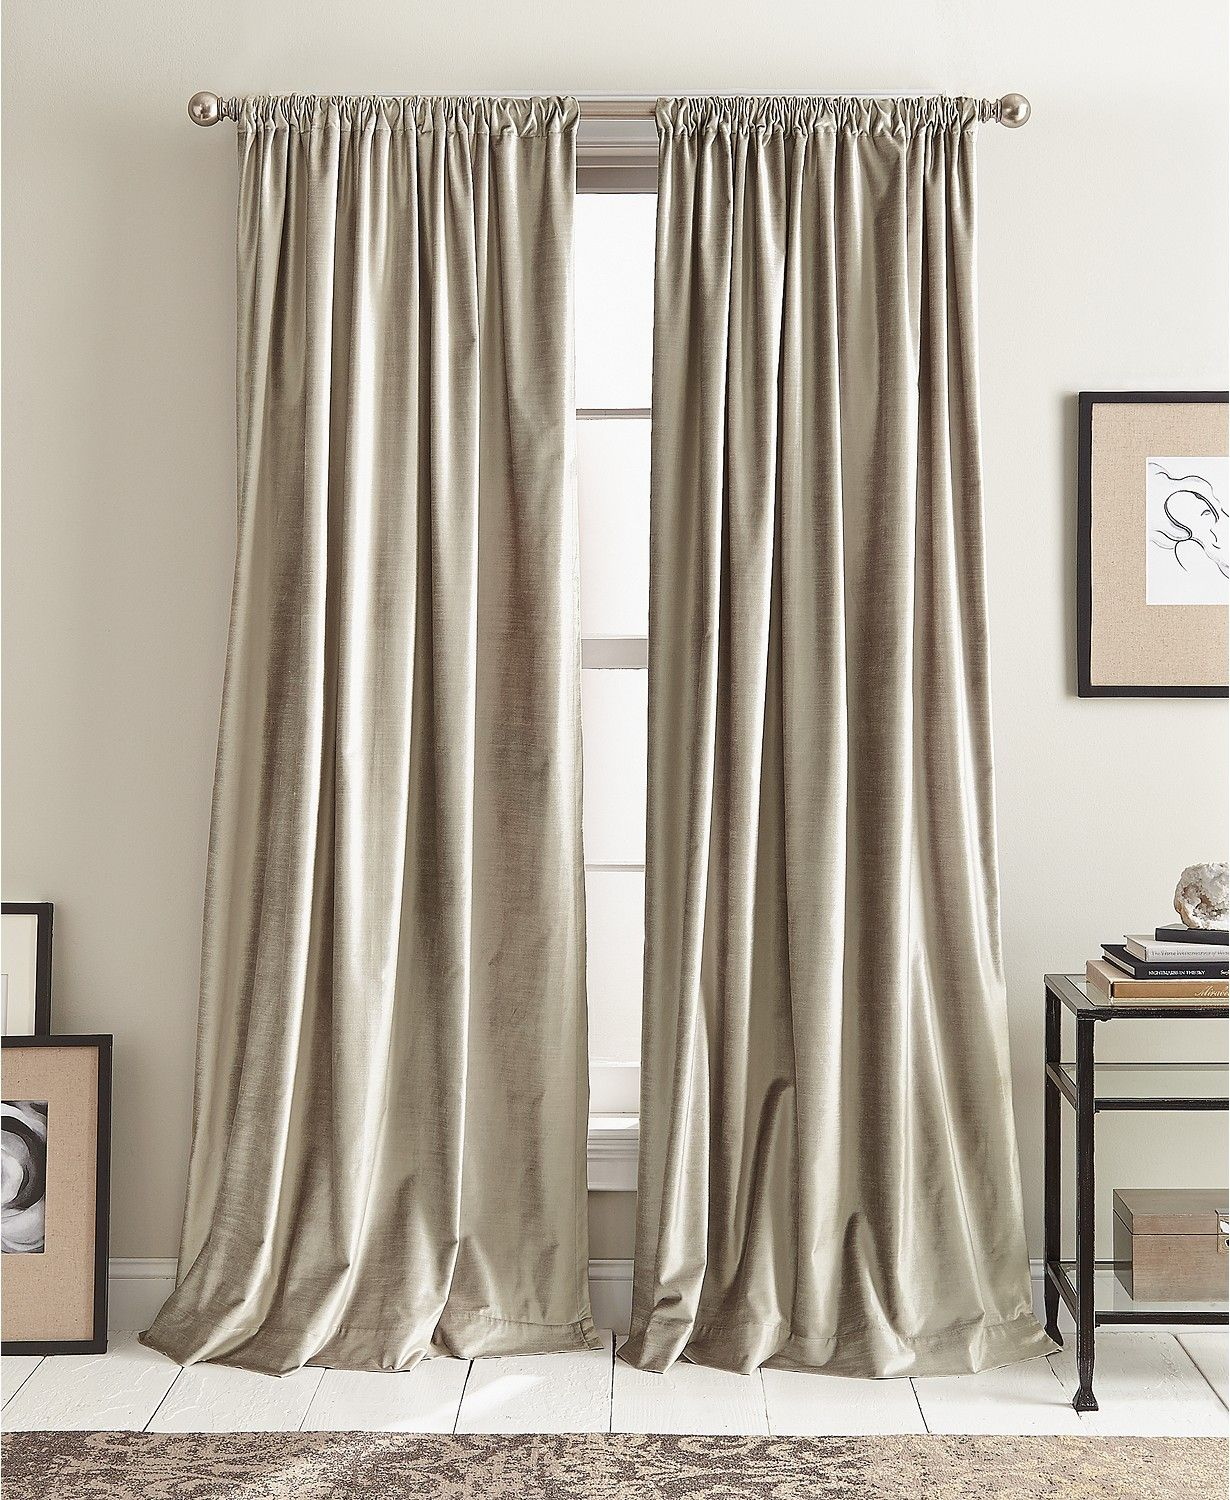 Dkny Modern Textured Velvet 50 X 96 Pole Top Pair Of Window